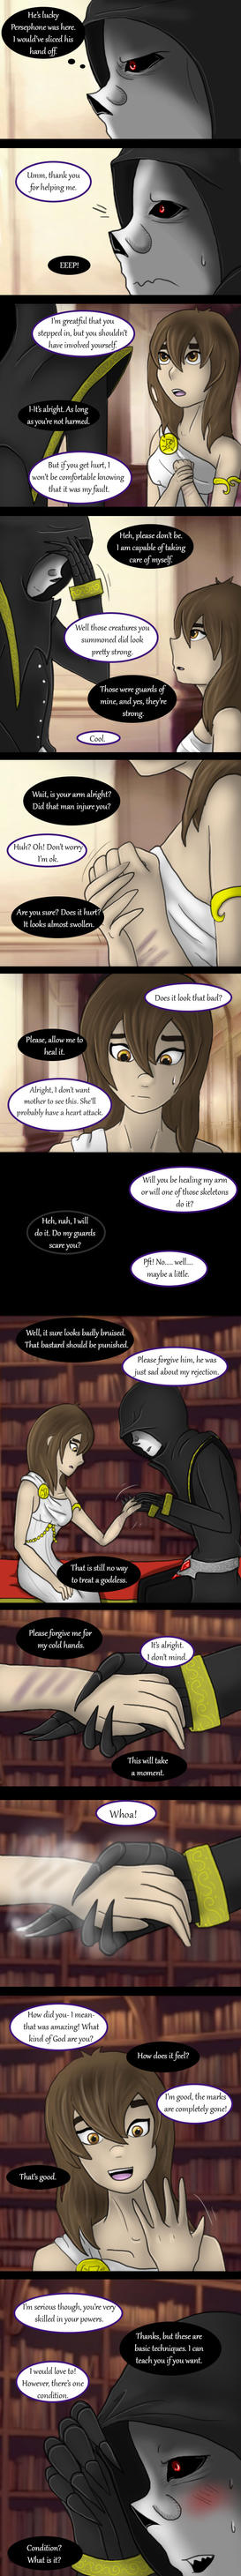 Forbiddentale page 21 by joselyn565